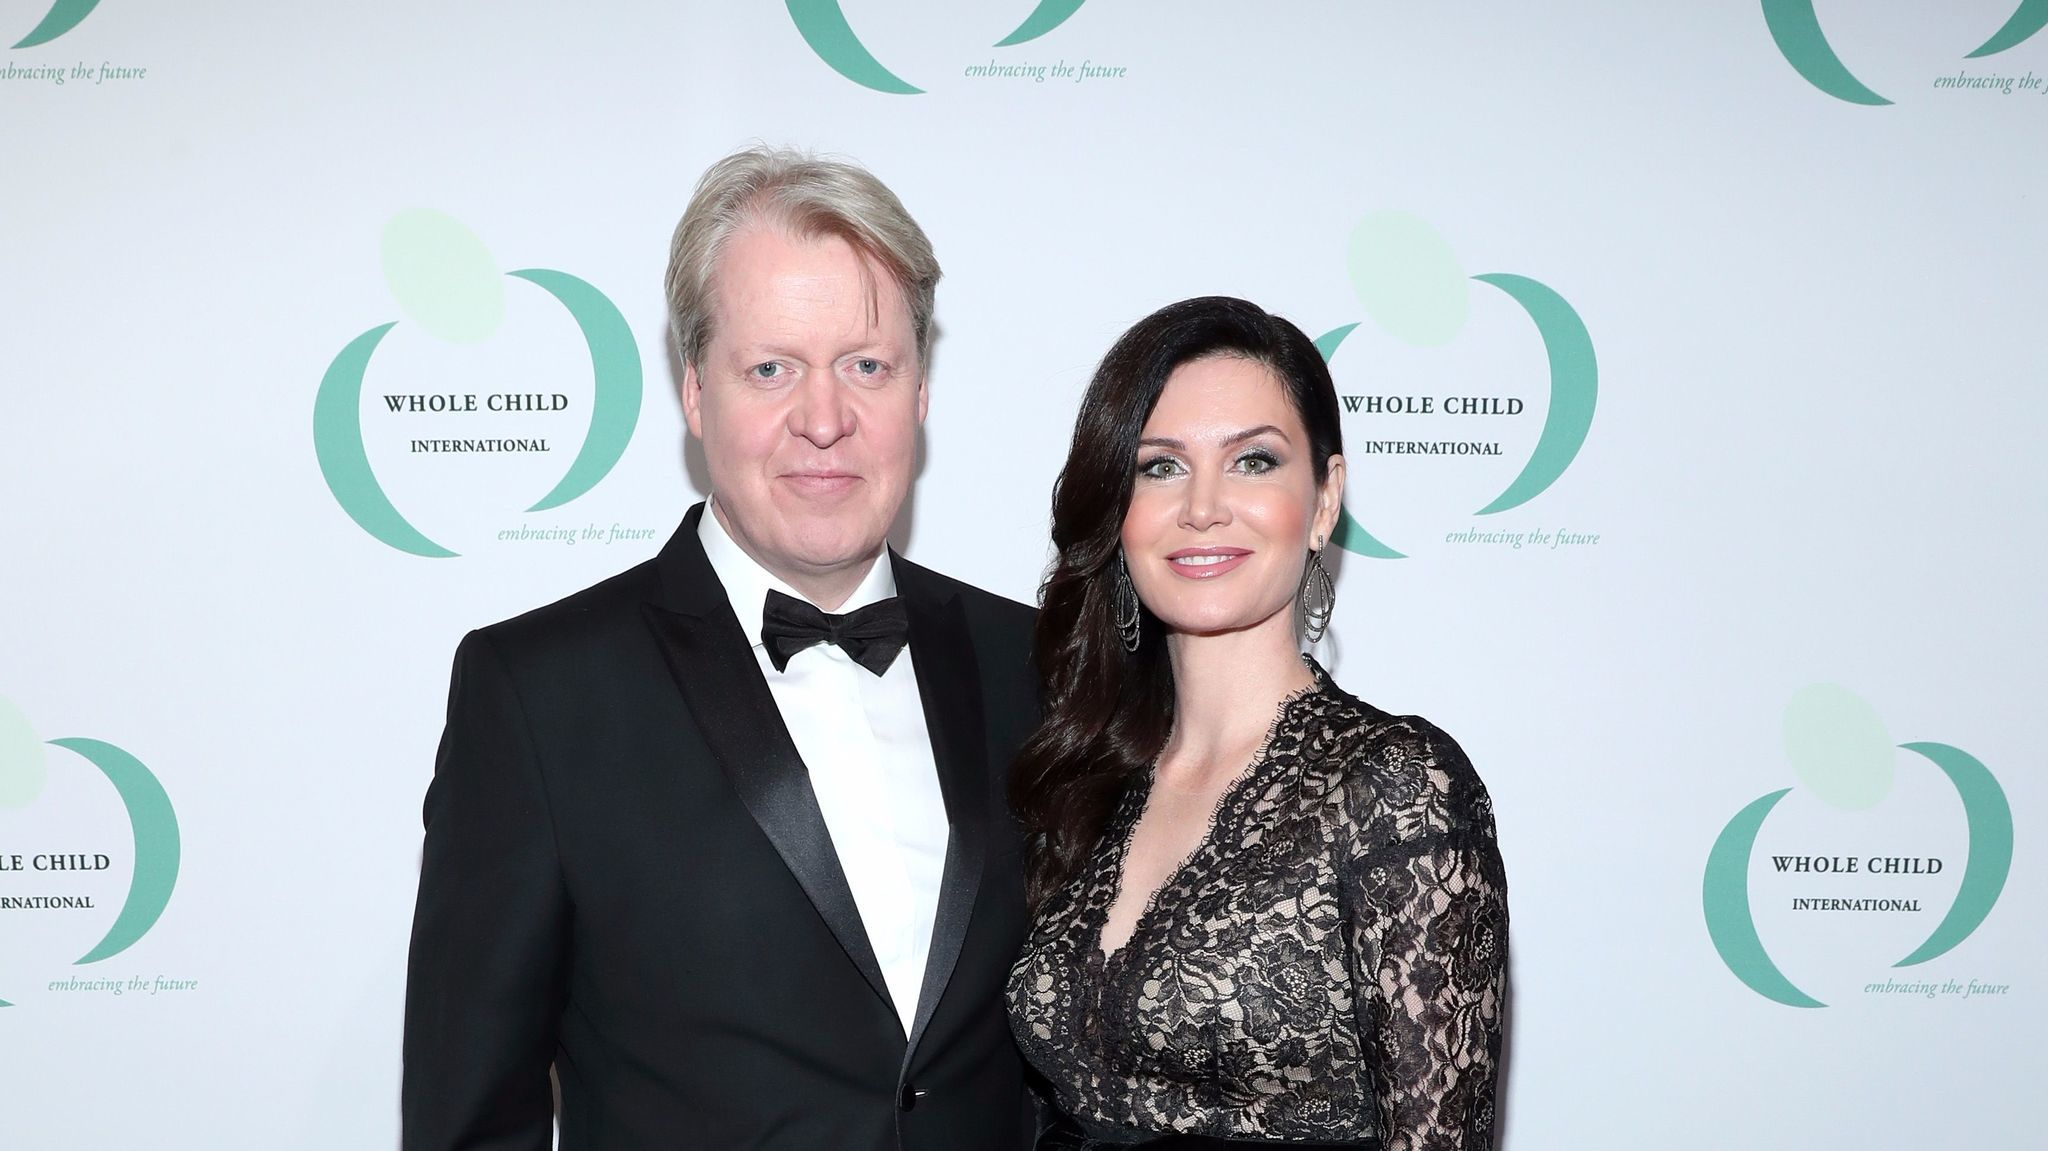 Charles and Karen Spencer at the Beverly Hills gala for Whole Child International.